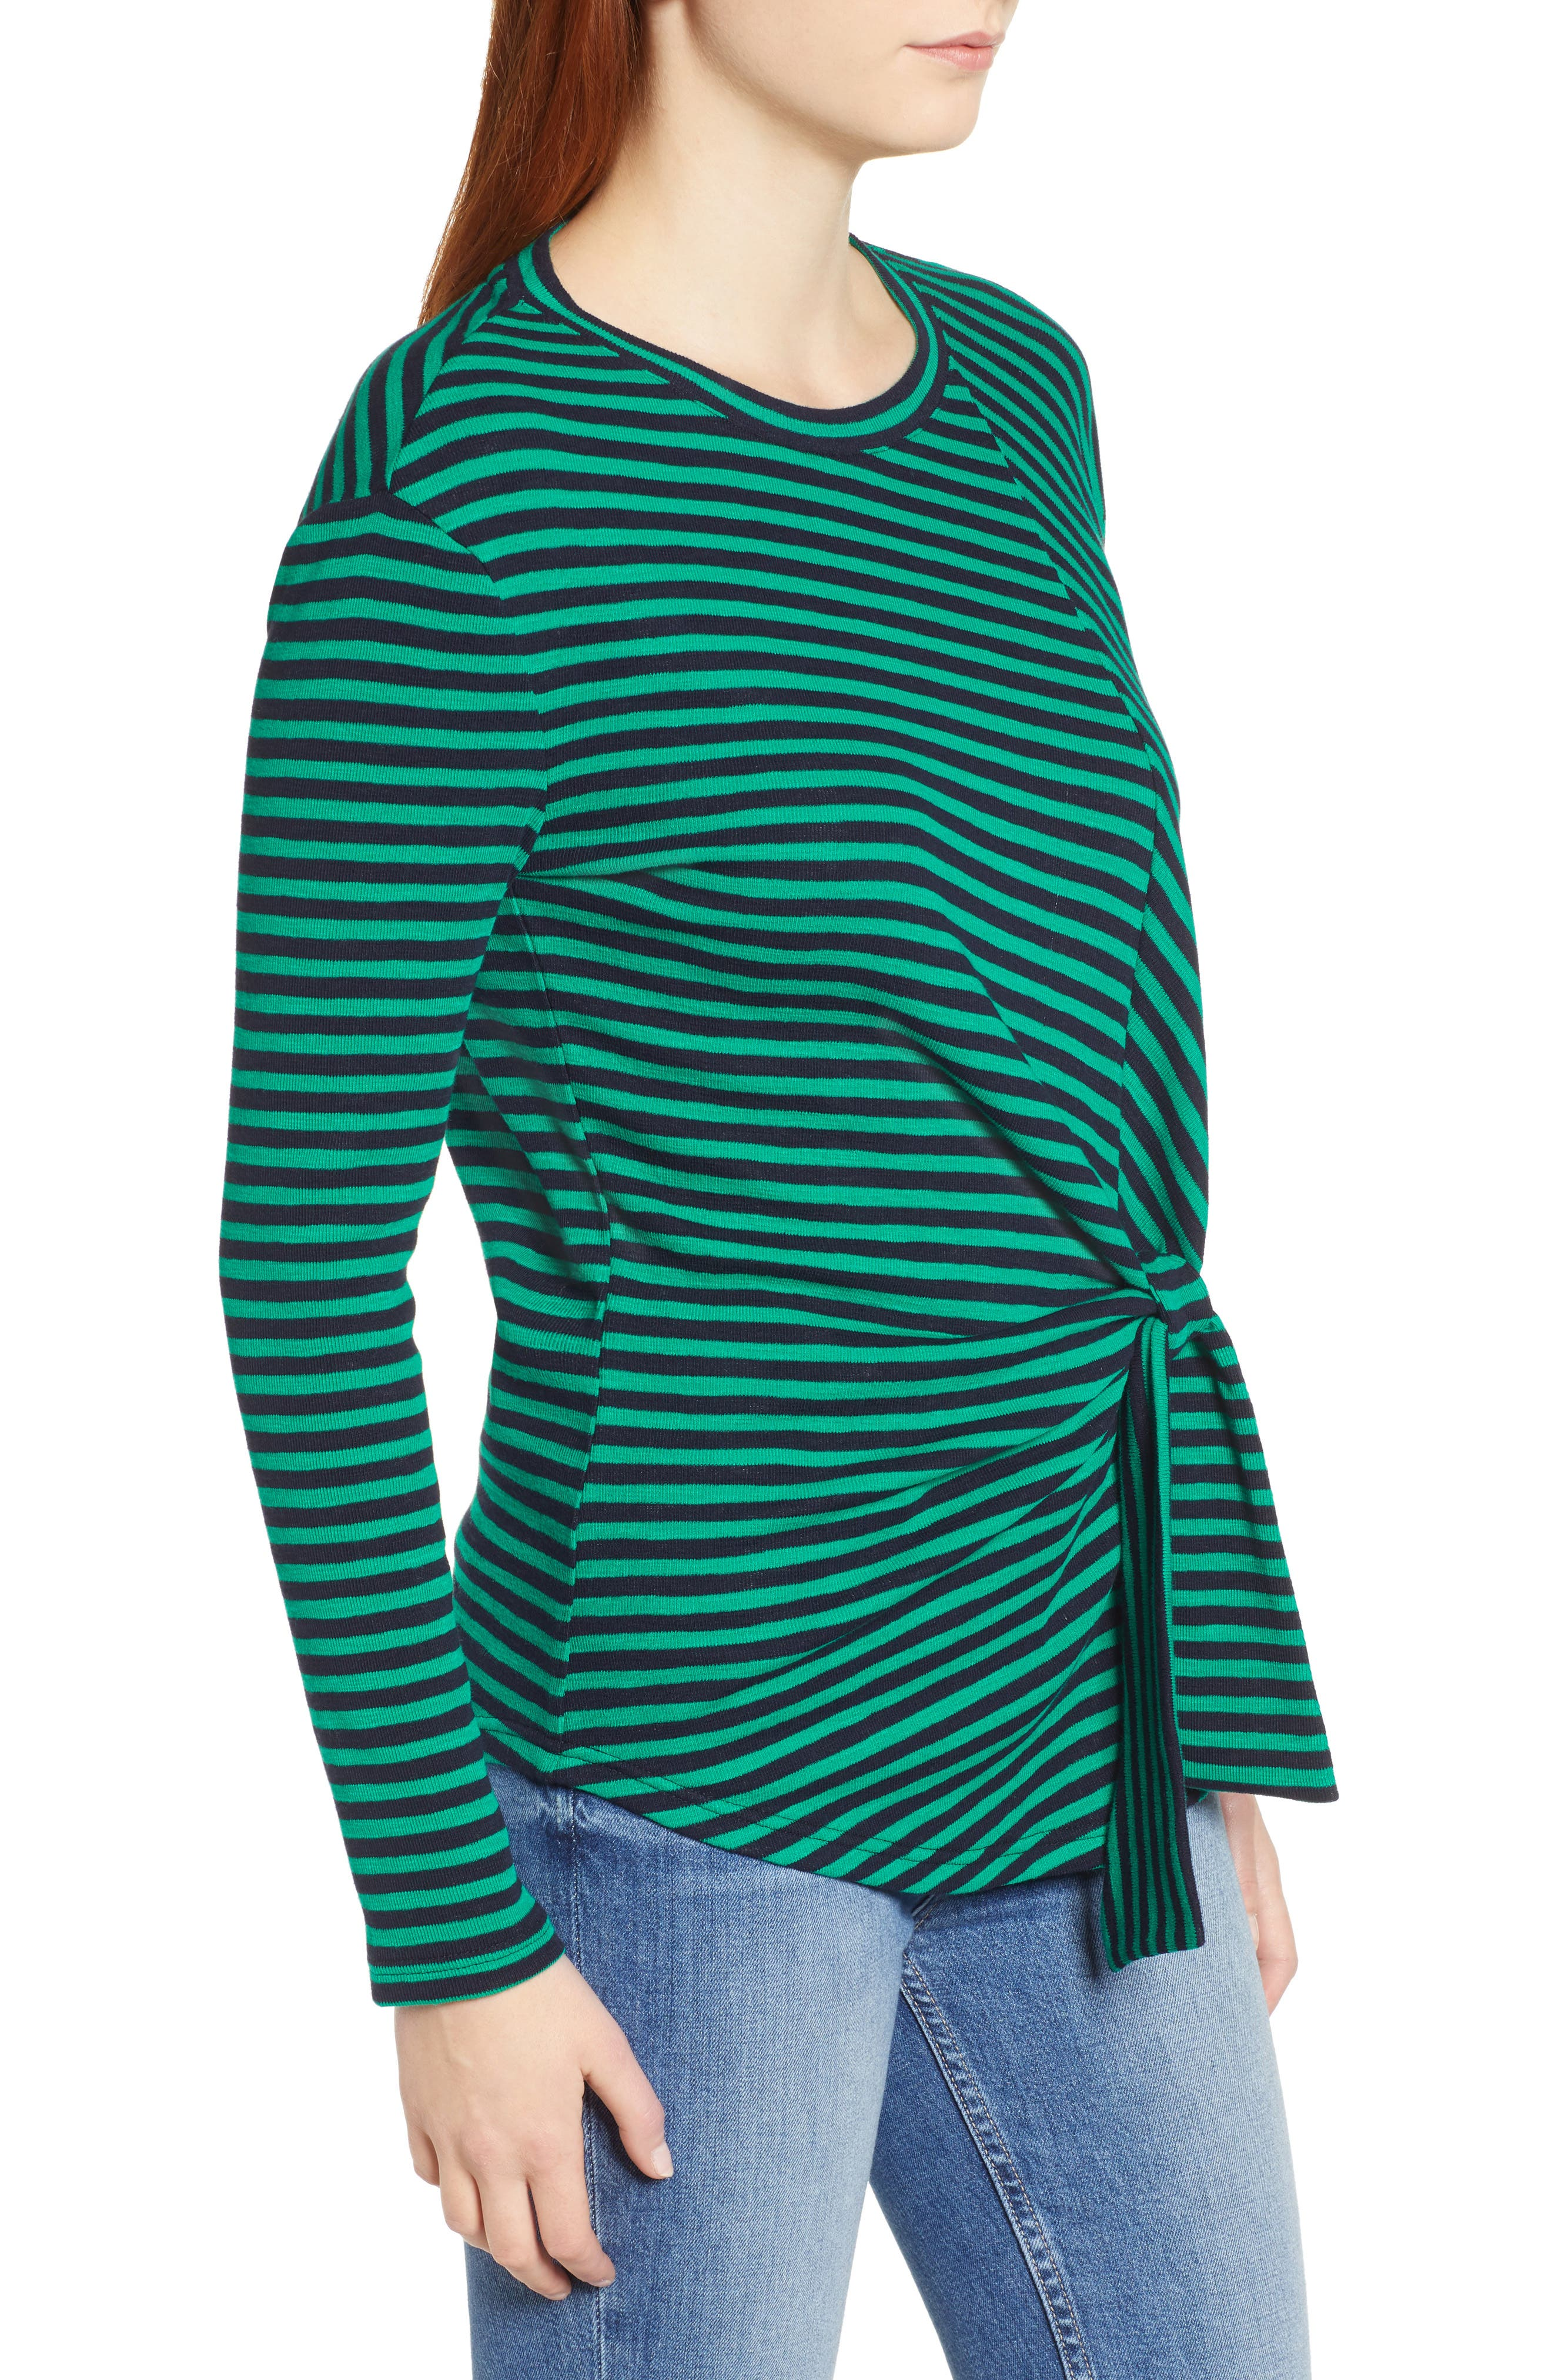 &.LAYERED, Twist Front Stripe Stretch Cotton Tee, Alternate thumbnail 3, color, NAVY/ GREEN